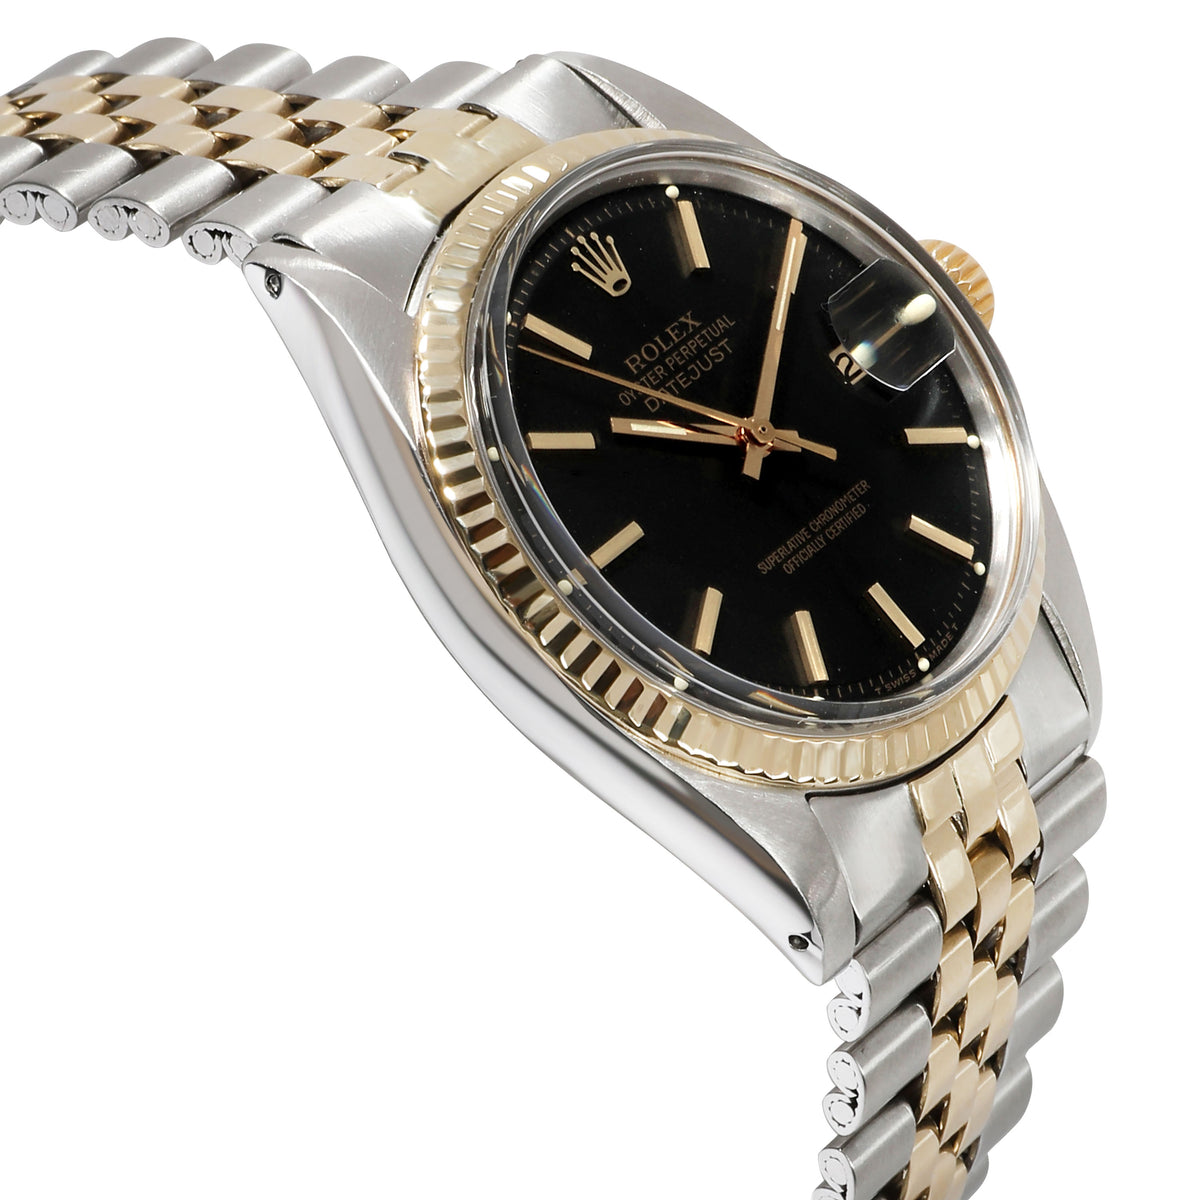 Rolex Datejust 1601 Men's Watch in 14kt Stainless Steel/Yellow Gold